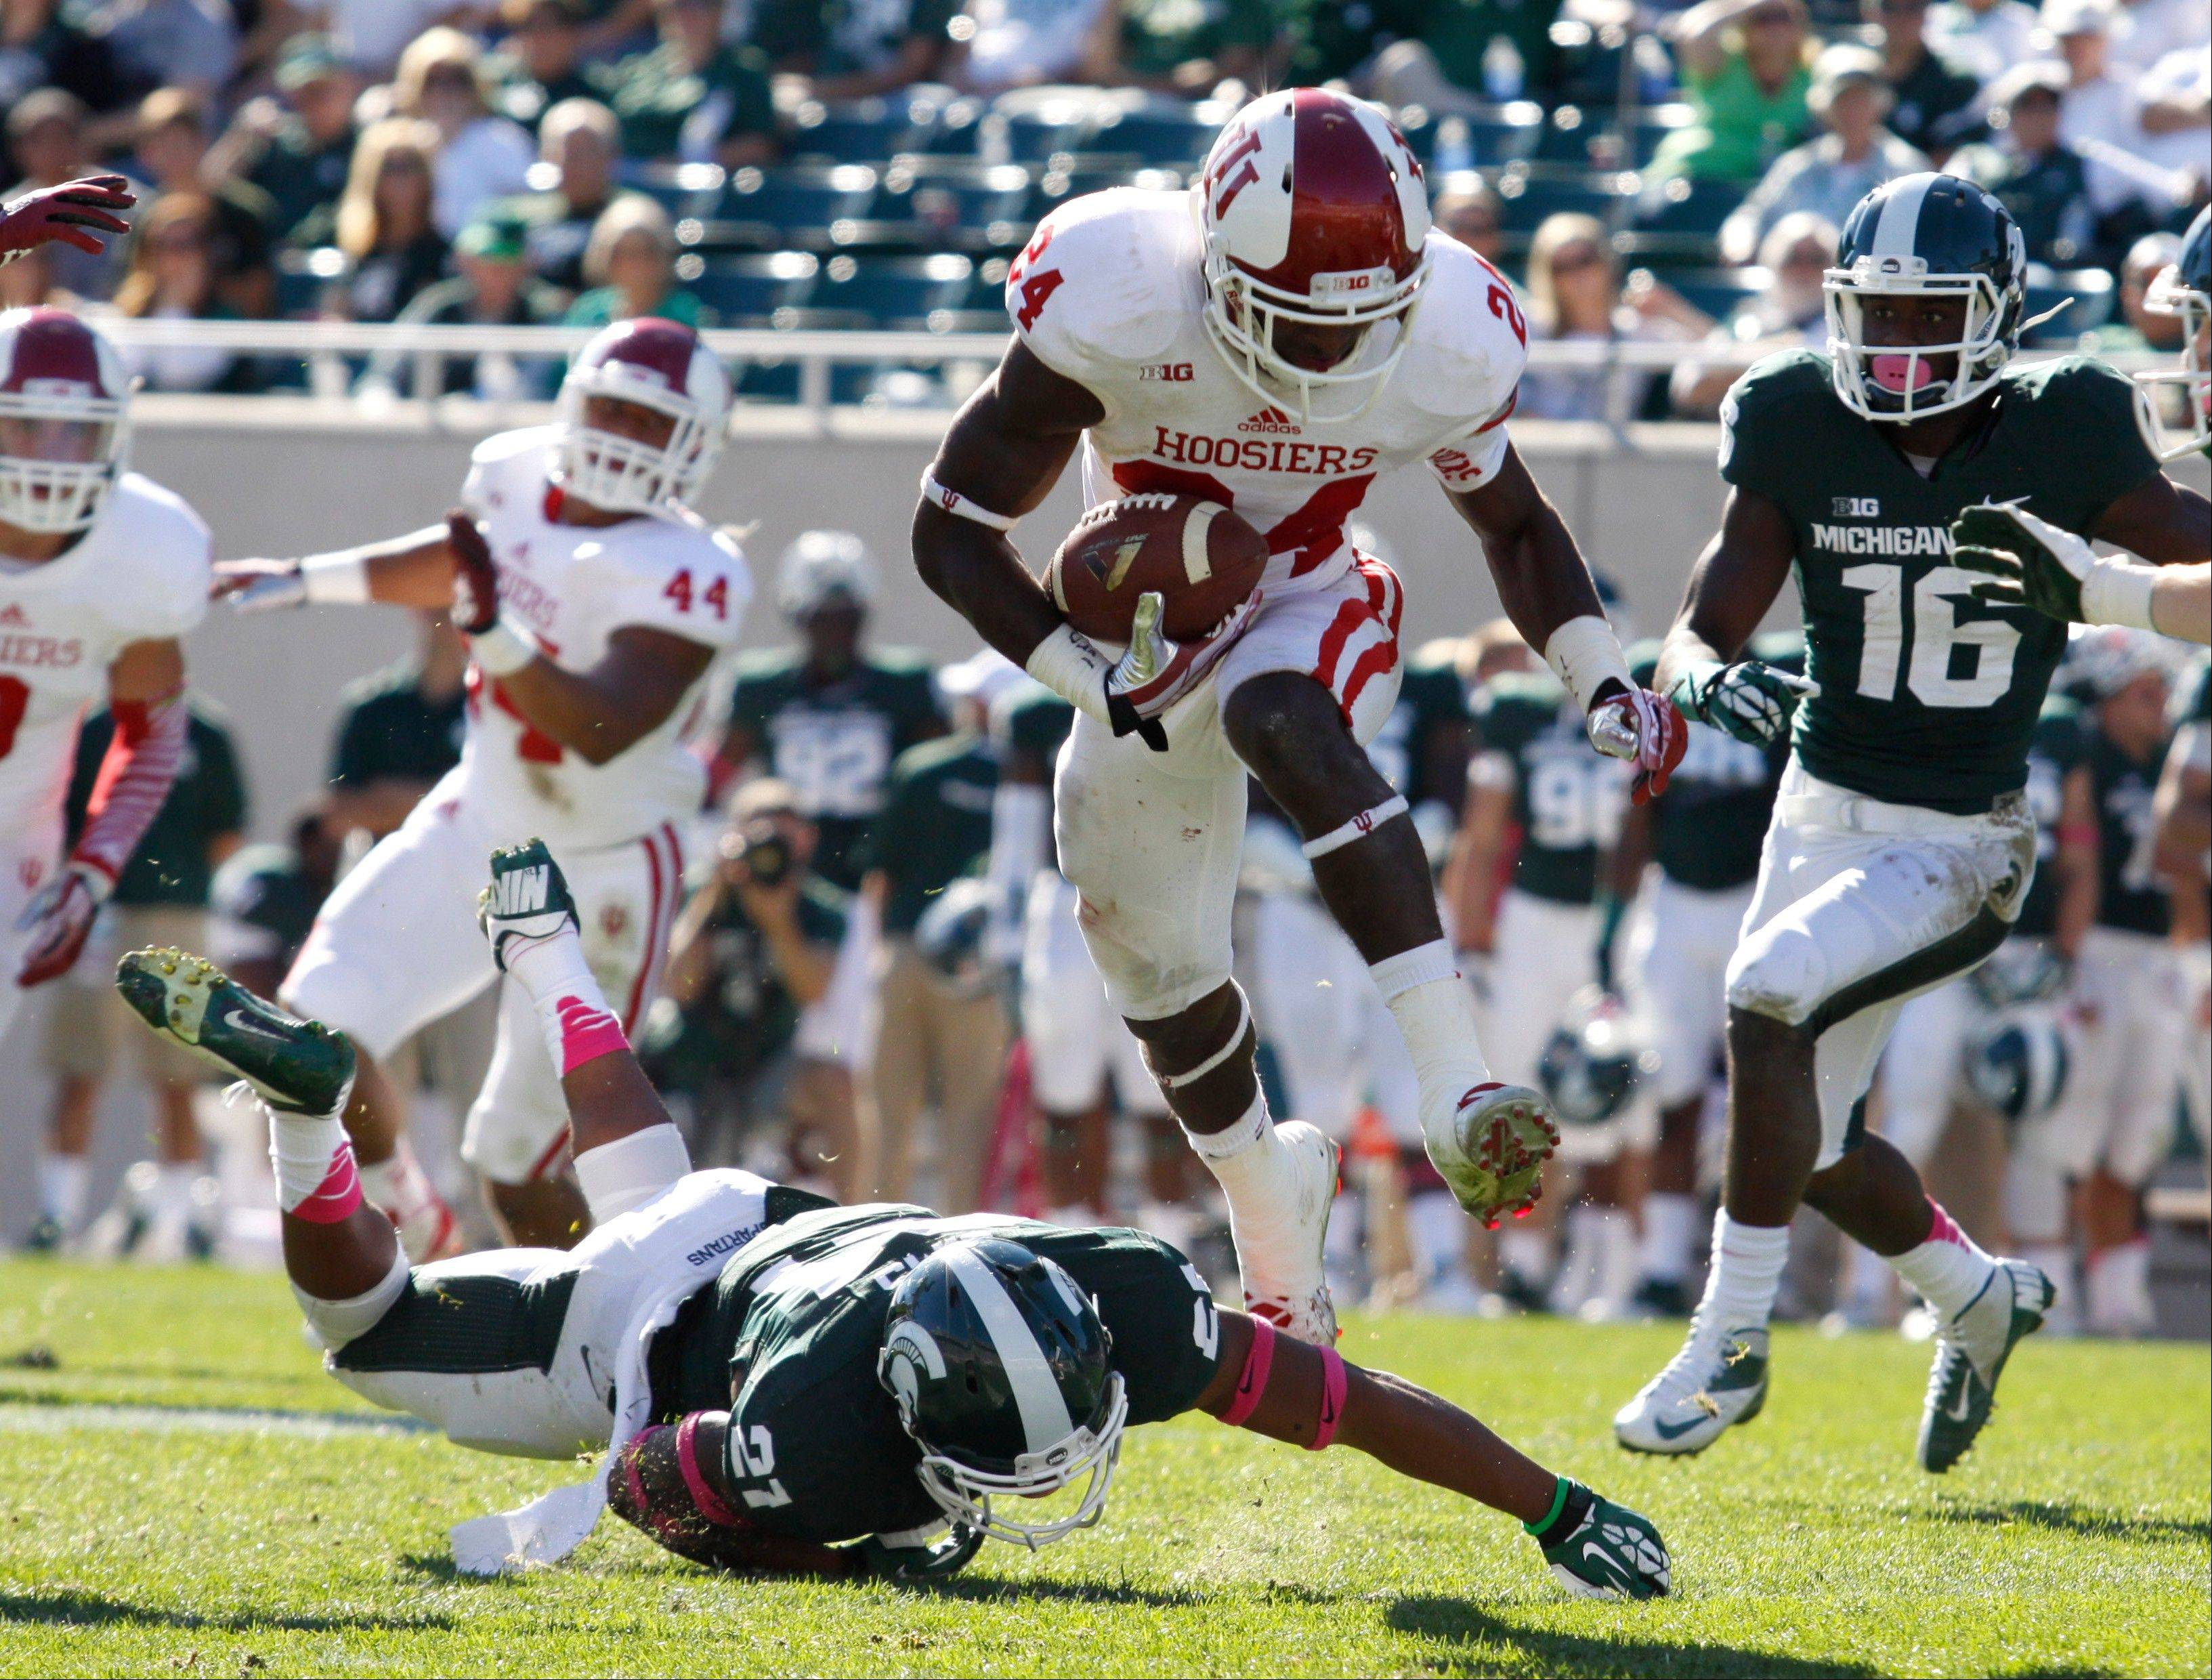 Indiana cornerback Tim Bennett hurdles Michigan State receiver Andre Sims Jr. while returning an interception during the fourth quarter of Saturday's game in East Lansing, Mich. Michigan State won 42-28.